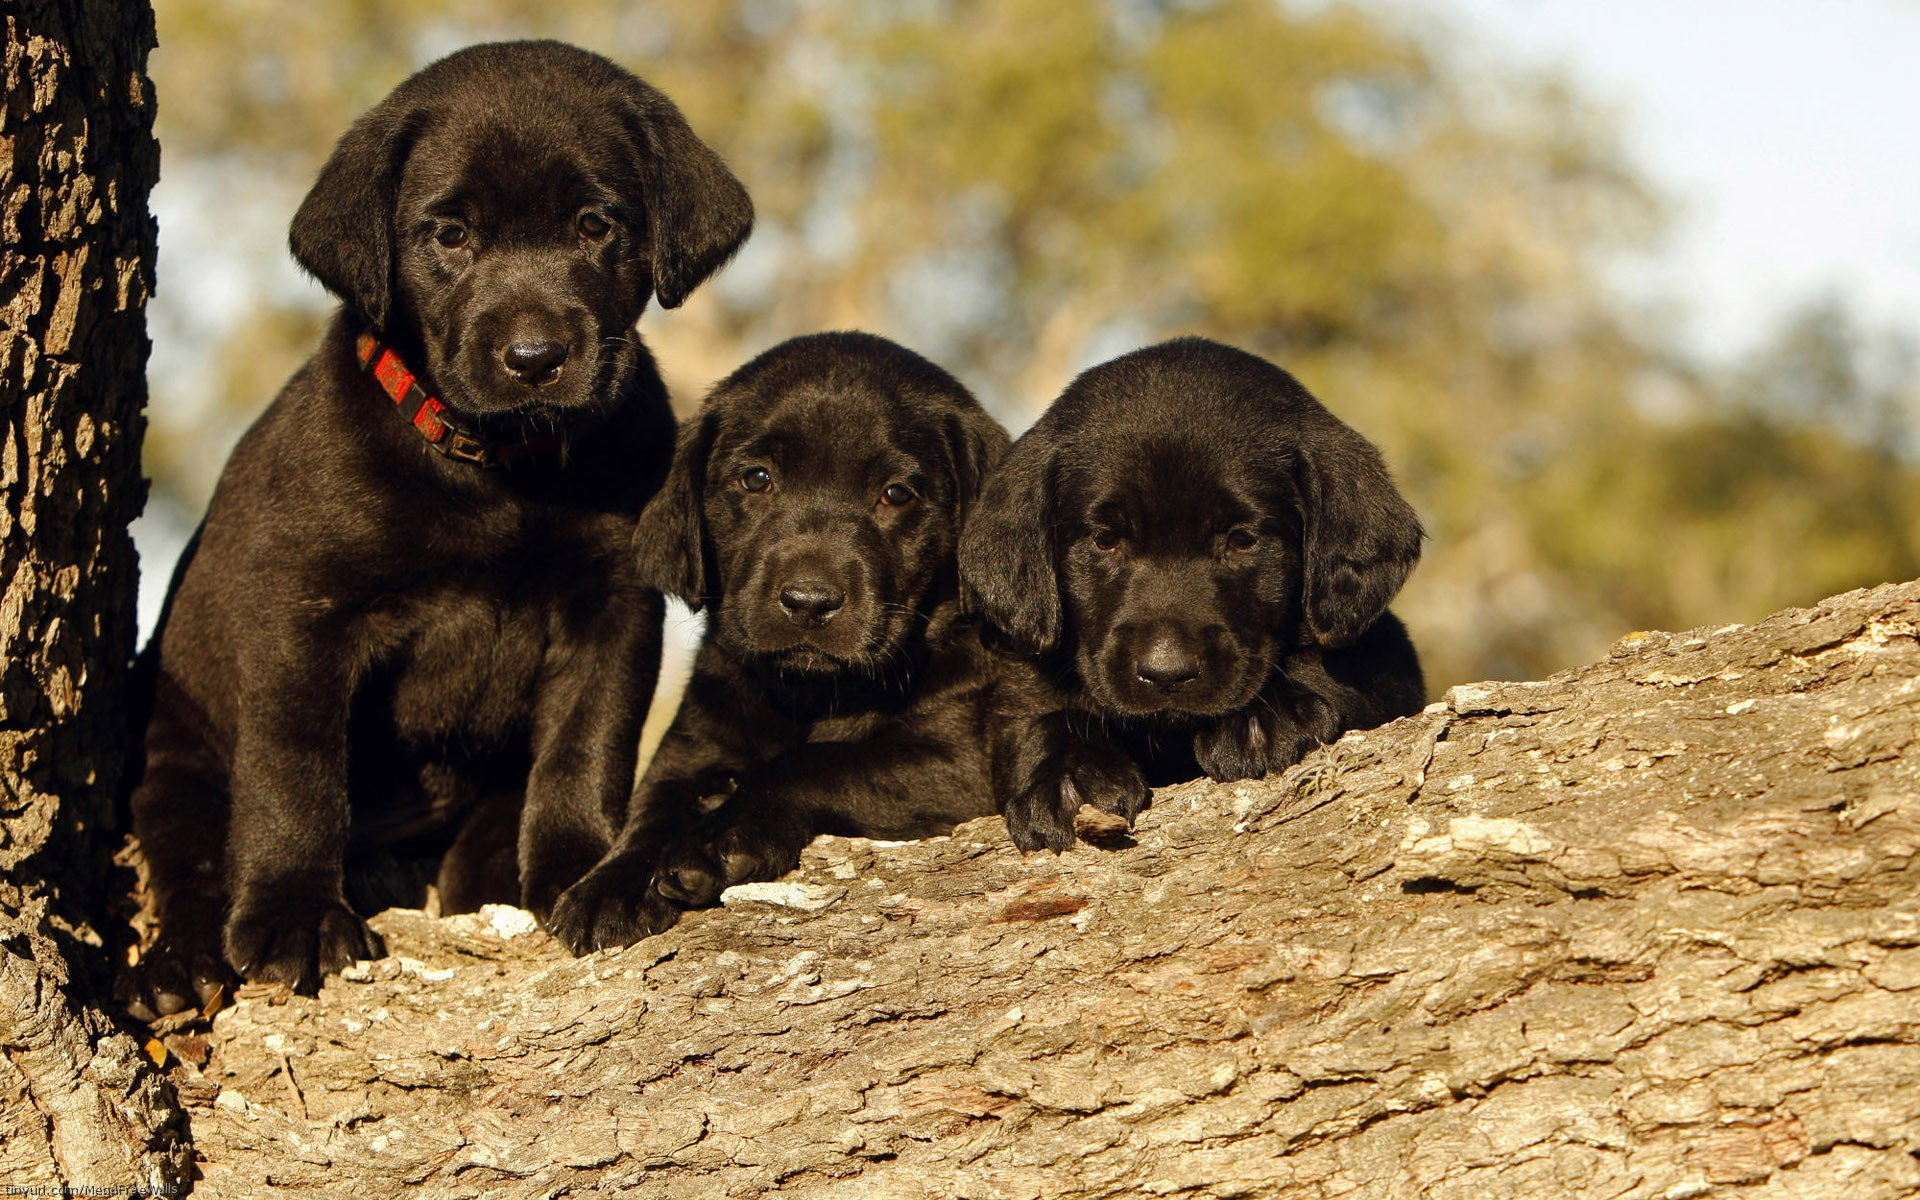 Black Labrador Puppy HD Wallpaper Download HD Wallpapers for Desktop 1920x1200